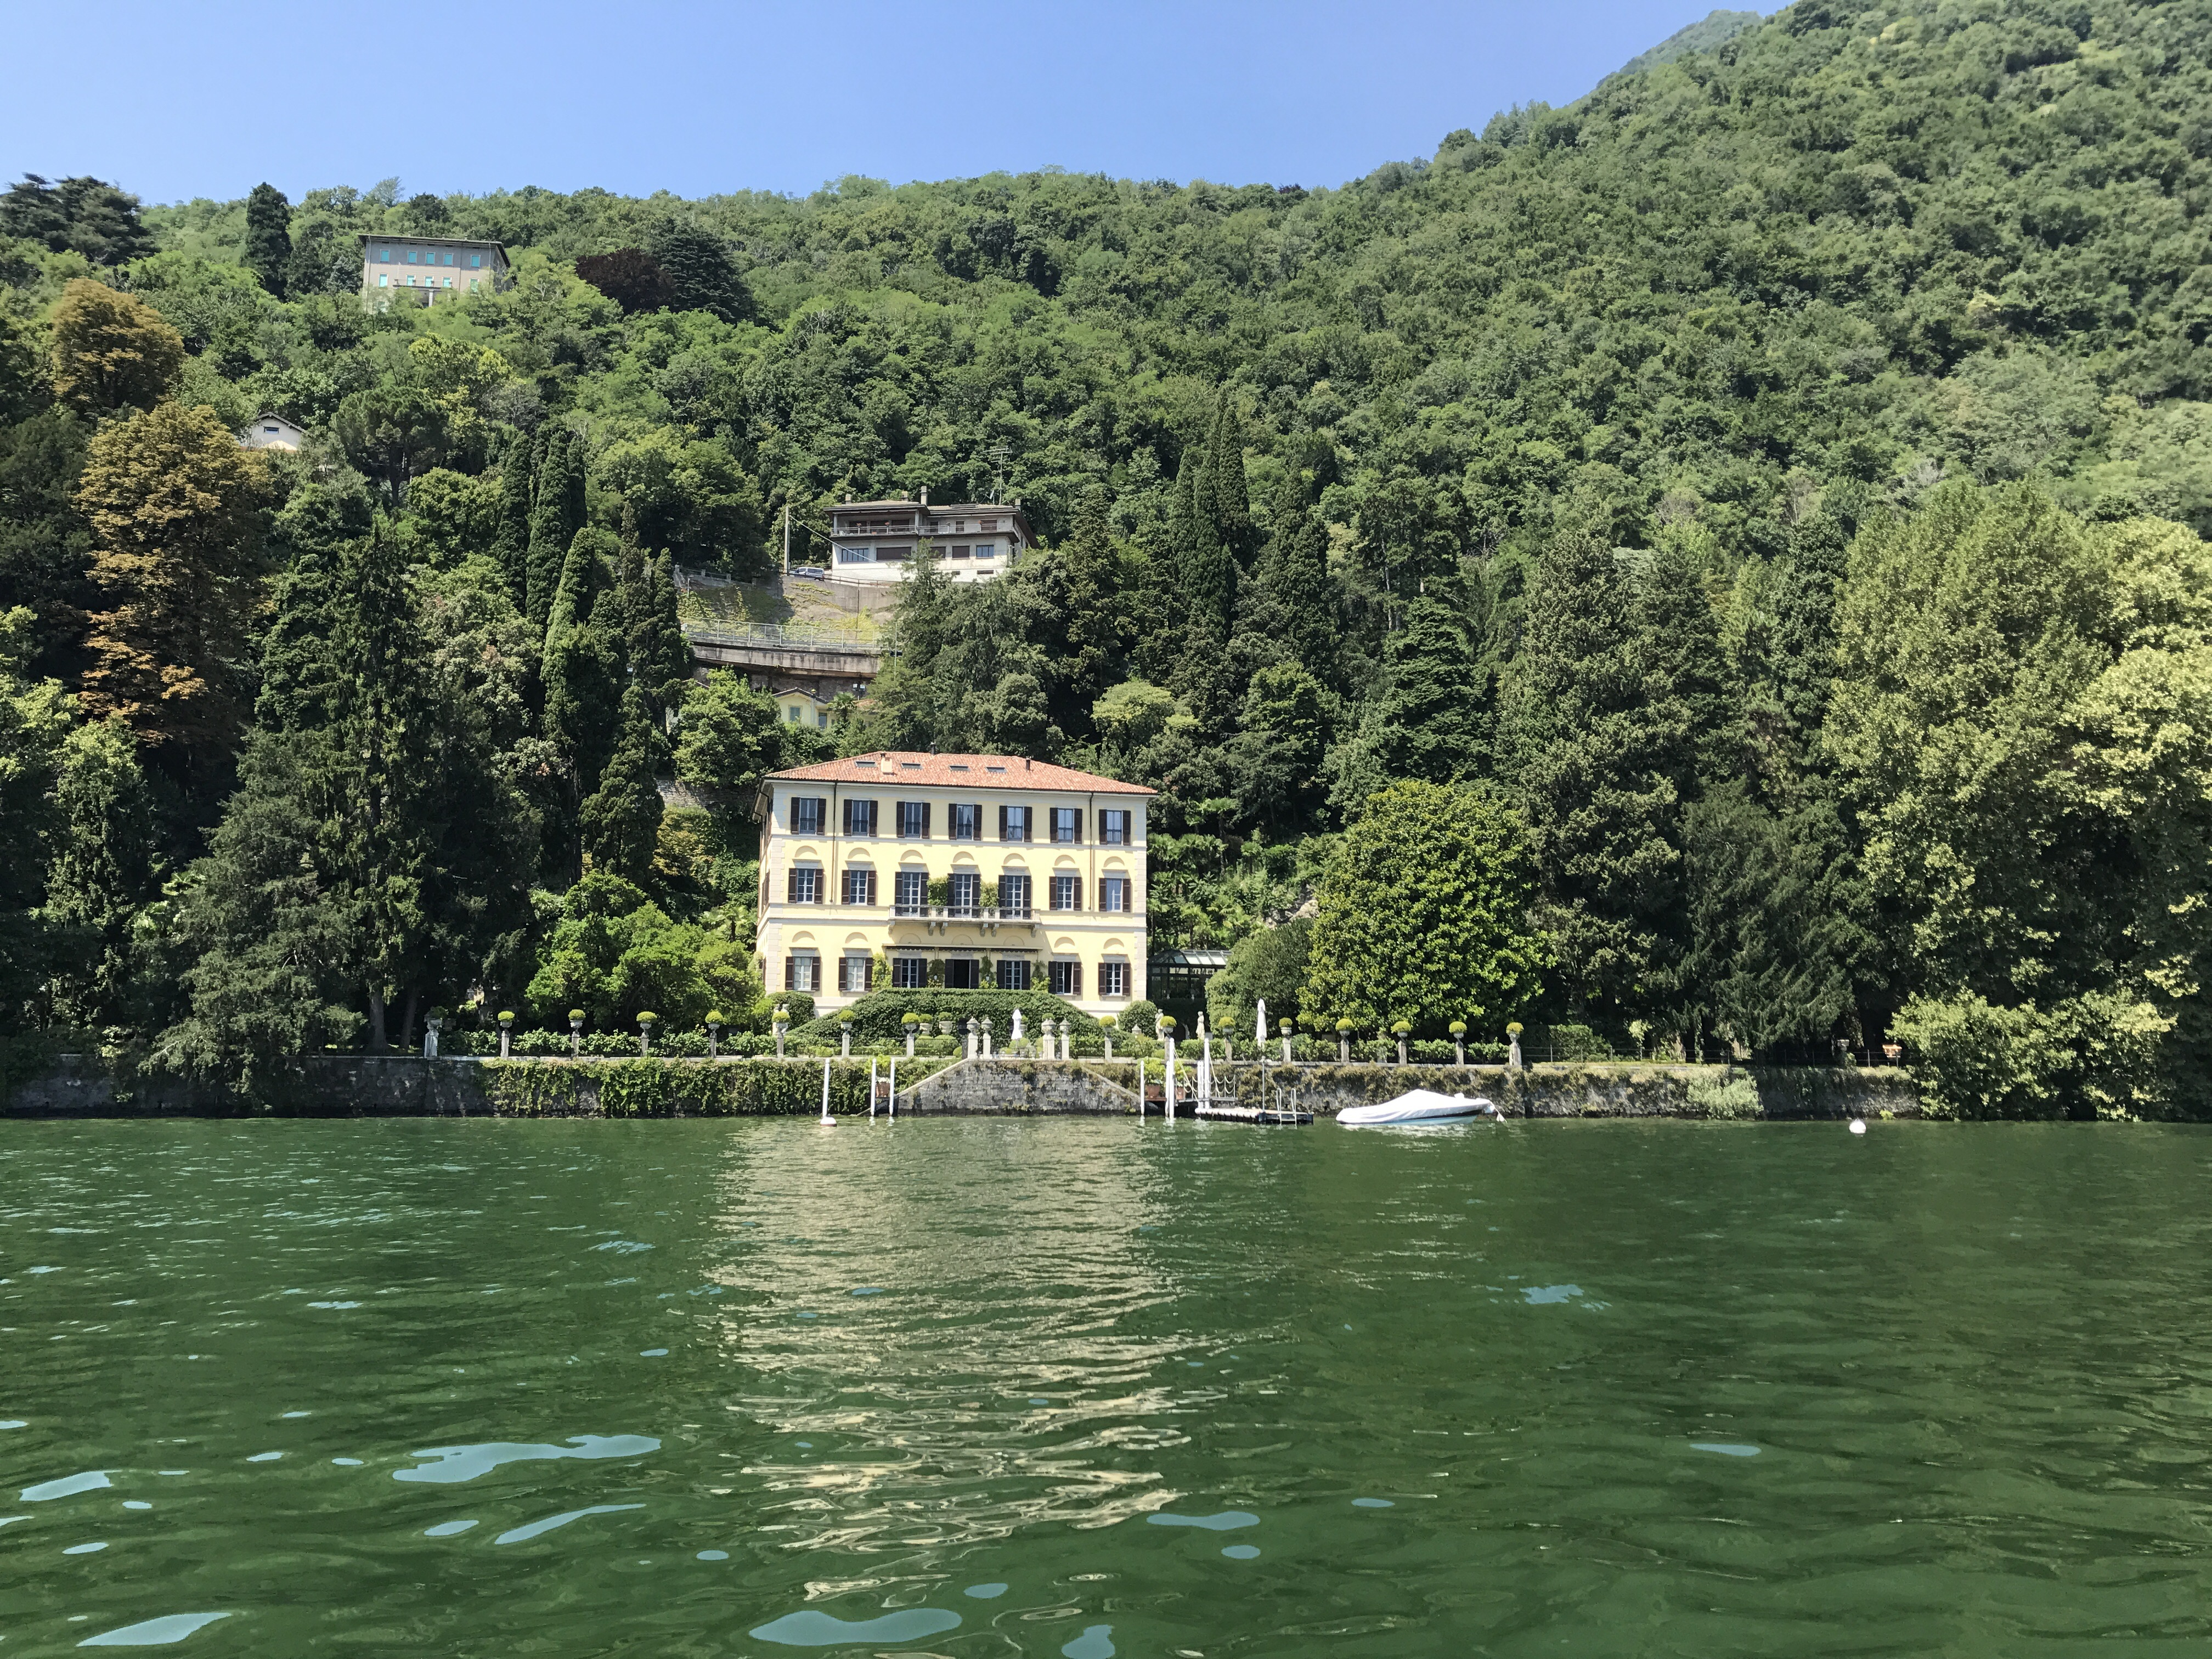 One of the stunning villas on the lake